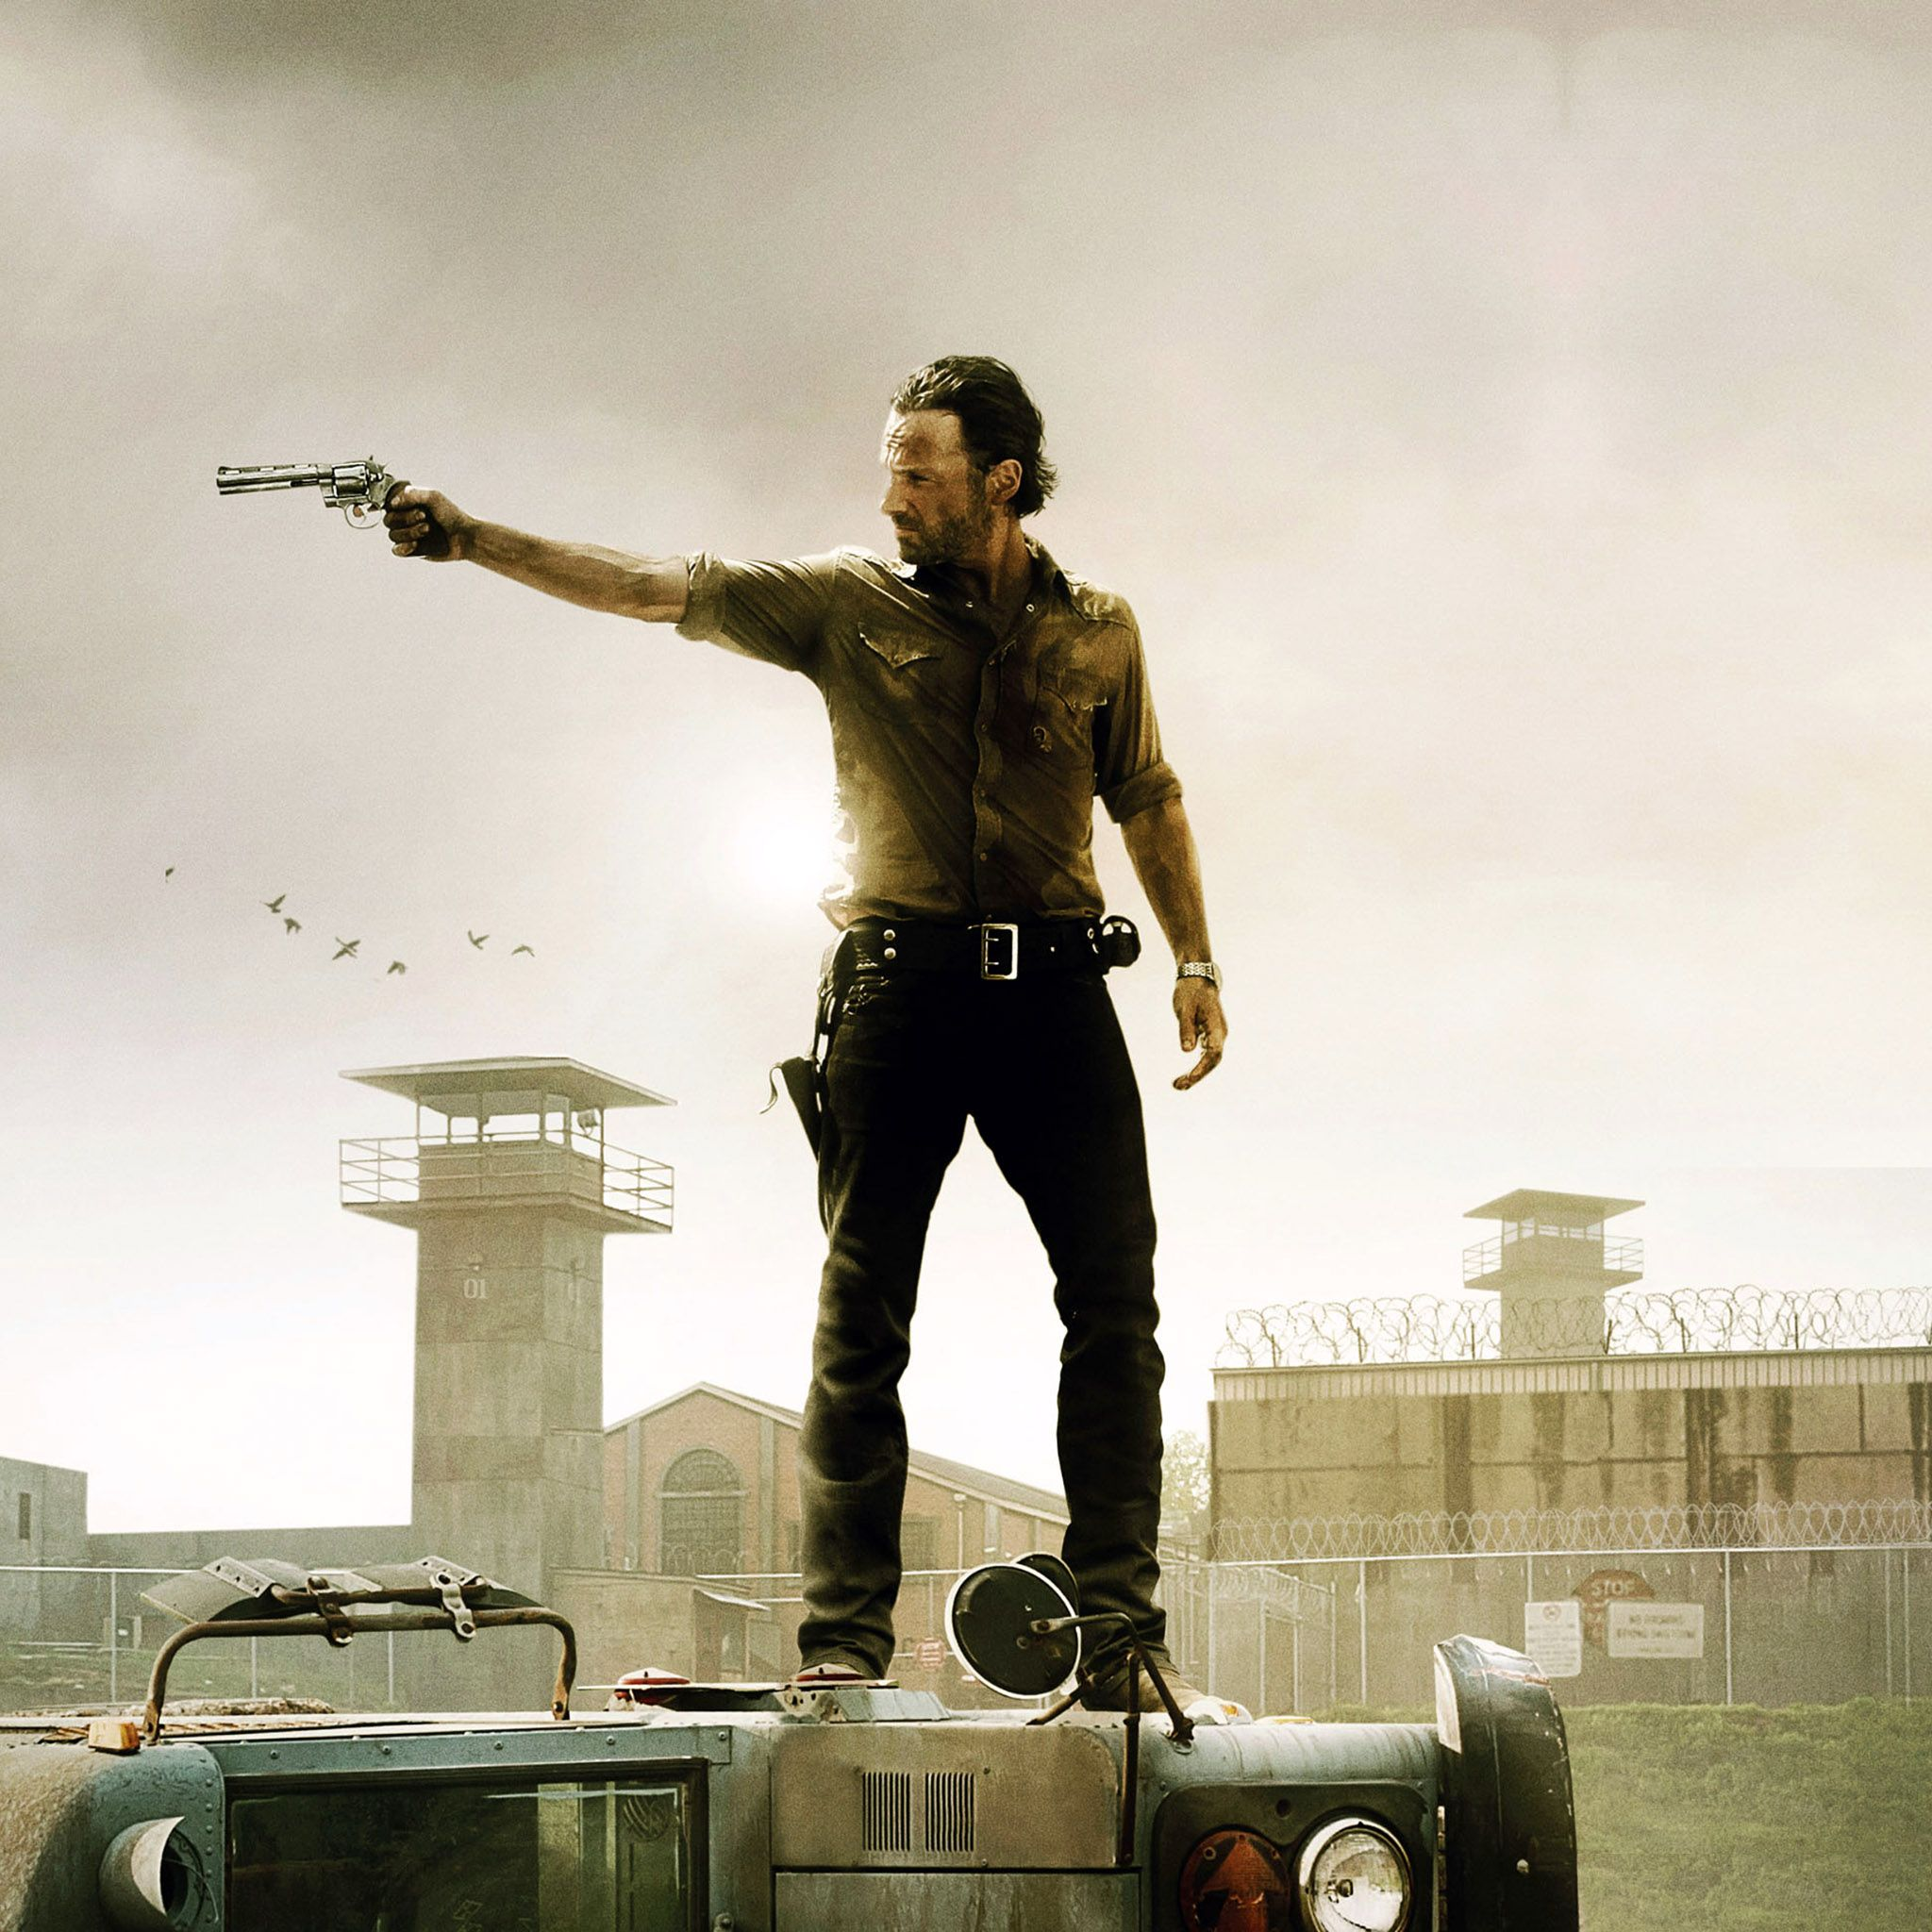 the walking dead rick grimes shooting ipad wallpaper hd 2048a—2048 pixels